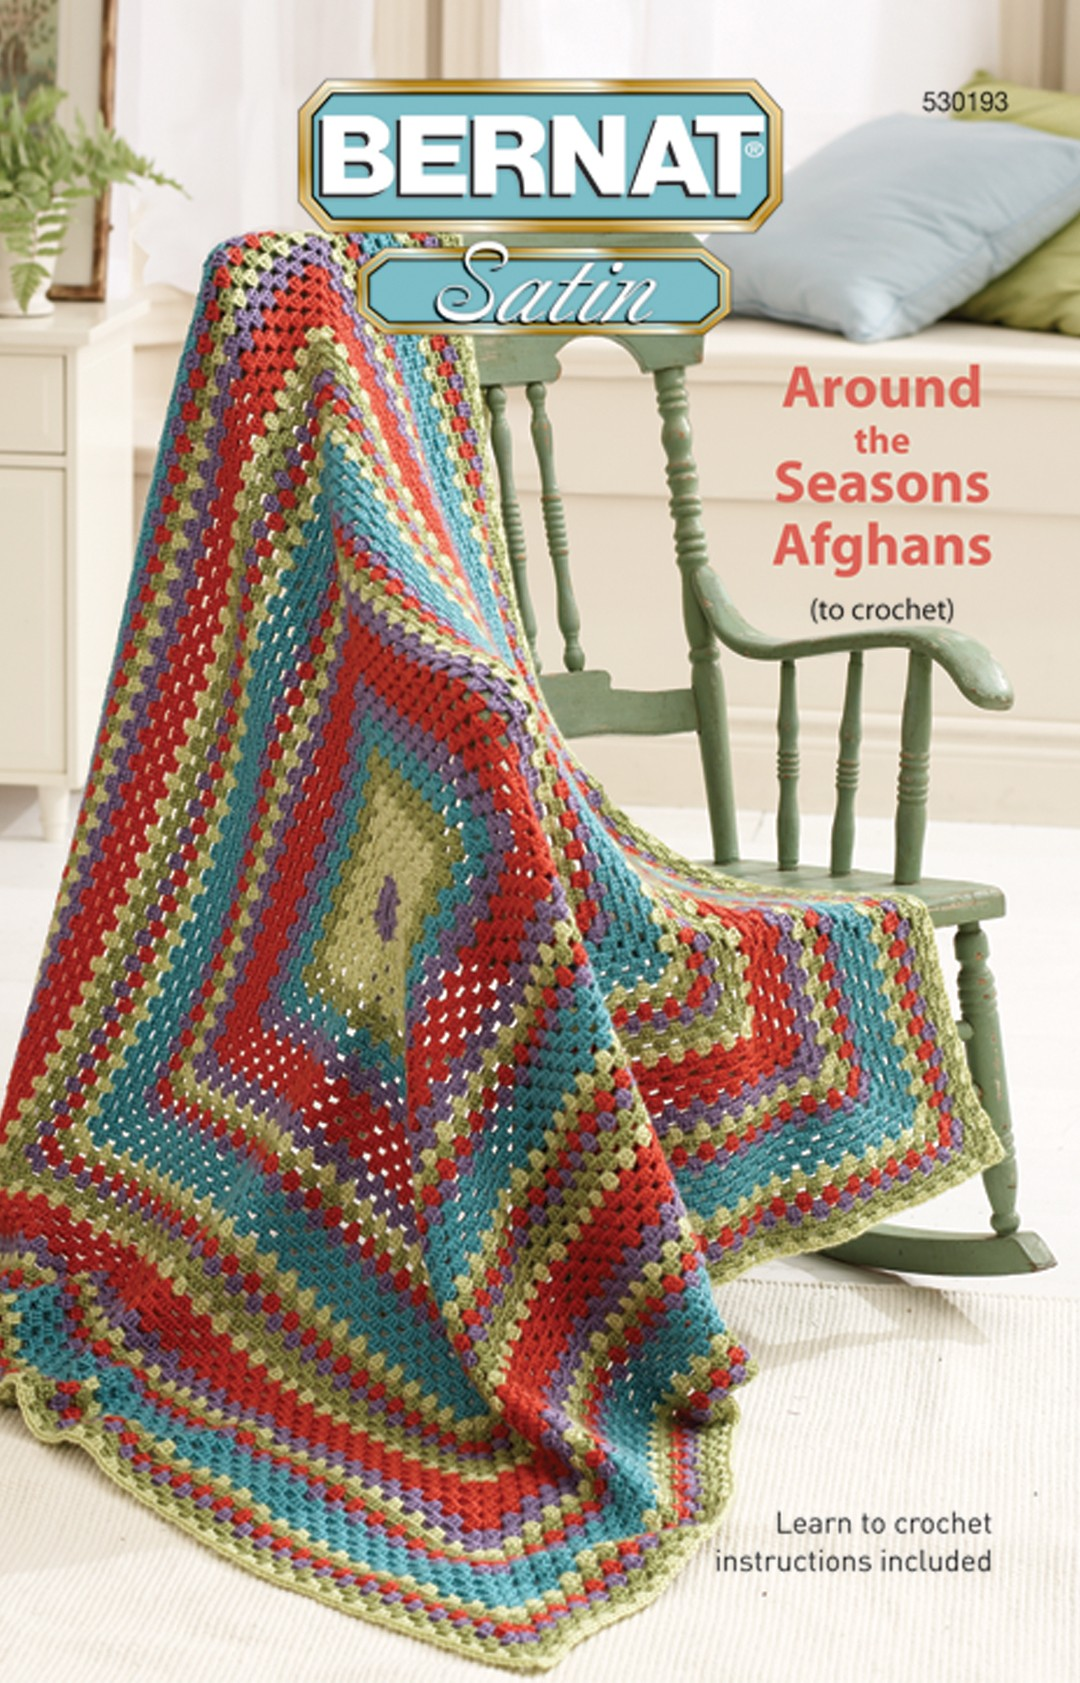 Around the Seasons Afghans